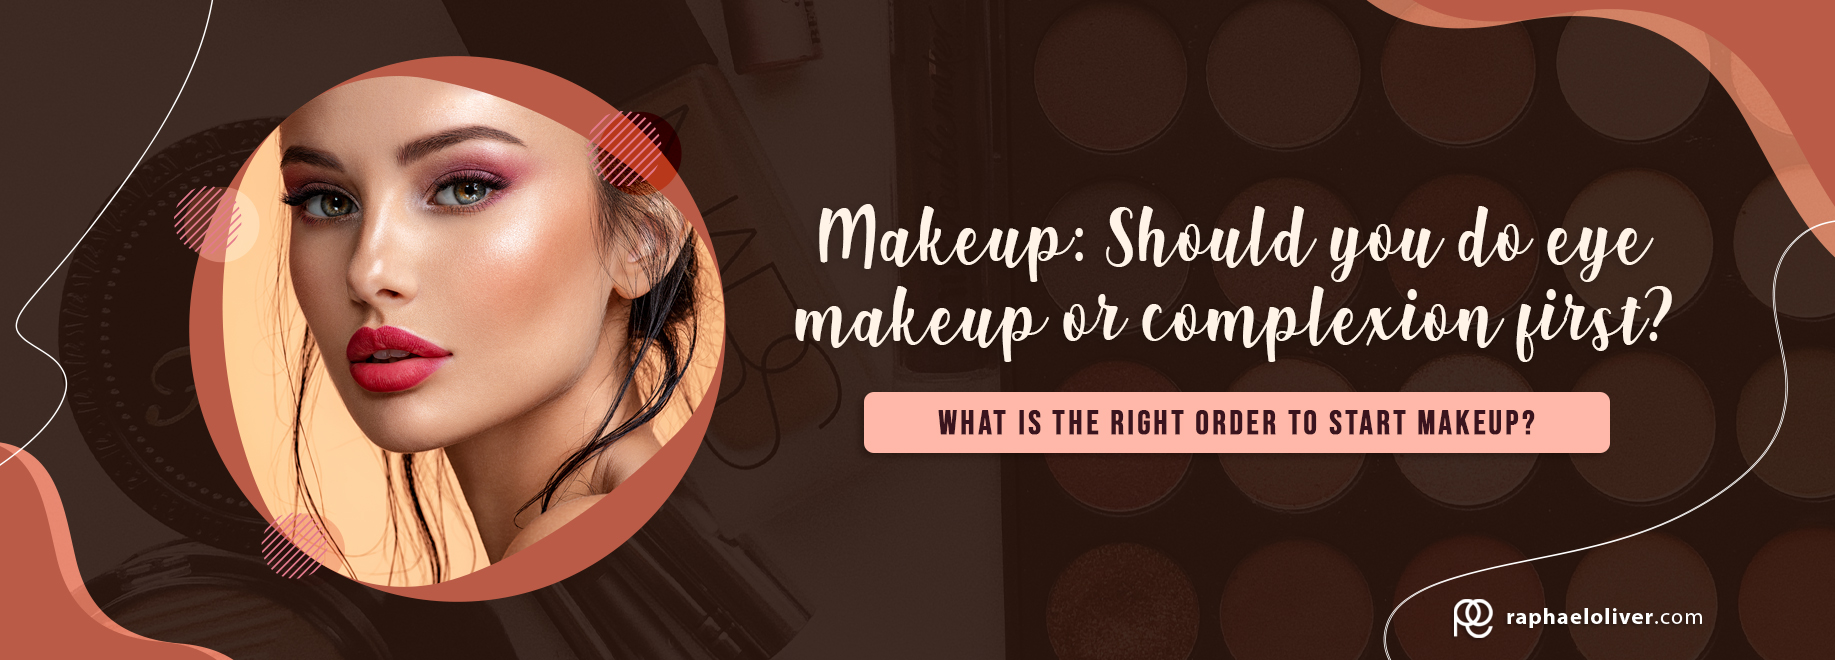 Makeup: Should you do eye makeup or complexion first?